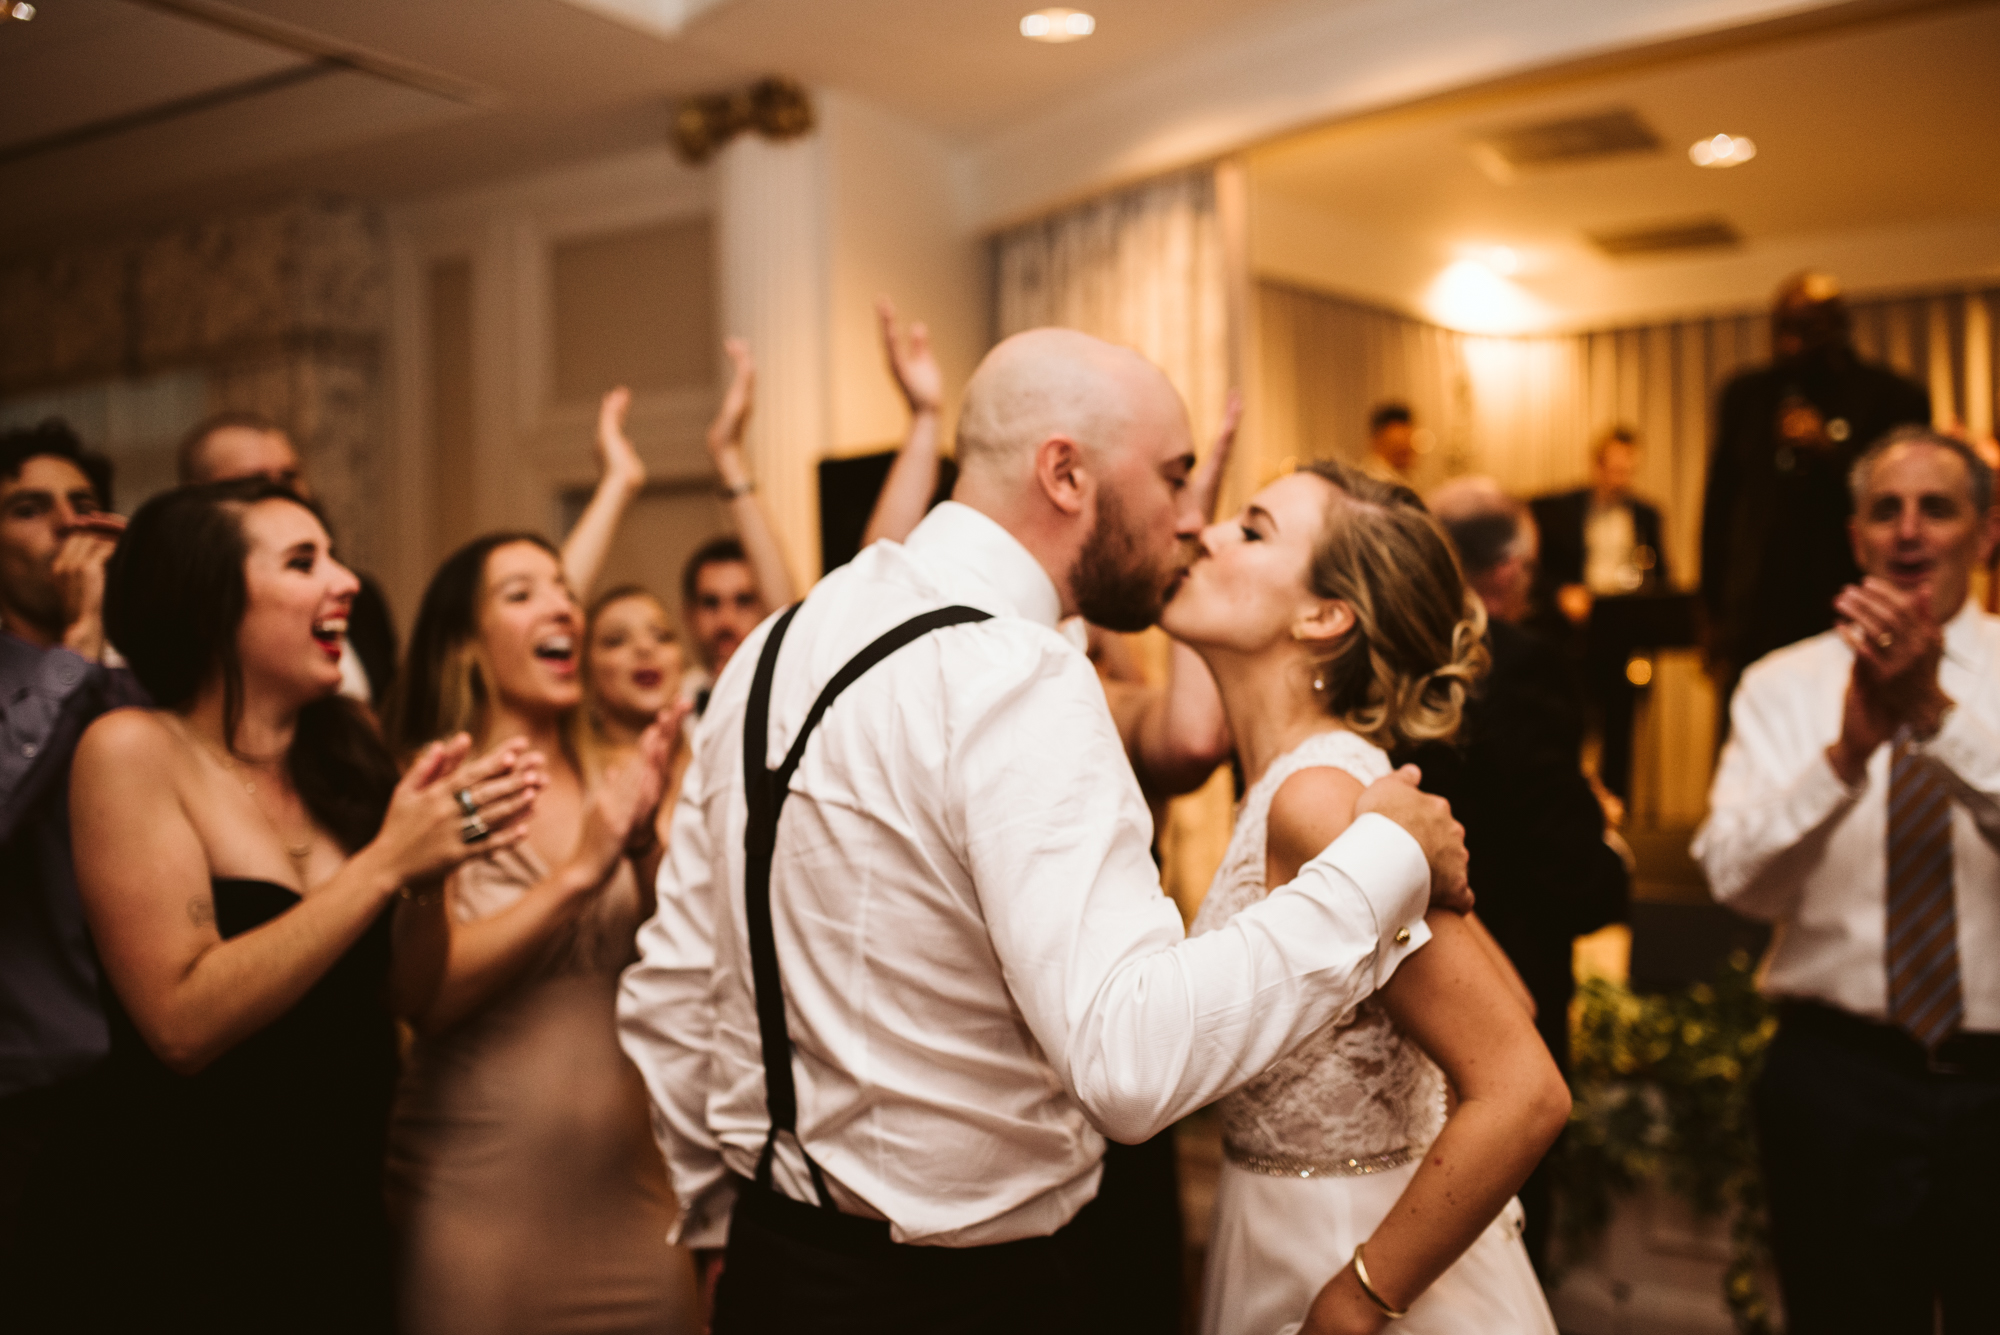 Elegant, Columbia Country Club, Chevy Chase Maryland, Baltimore Wedding Photographer, Classic, Jewish Wedding, Bride and Groom Kissing at Wedding Reception, End Of the Night